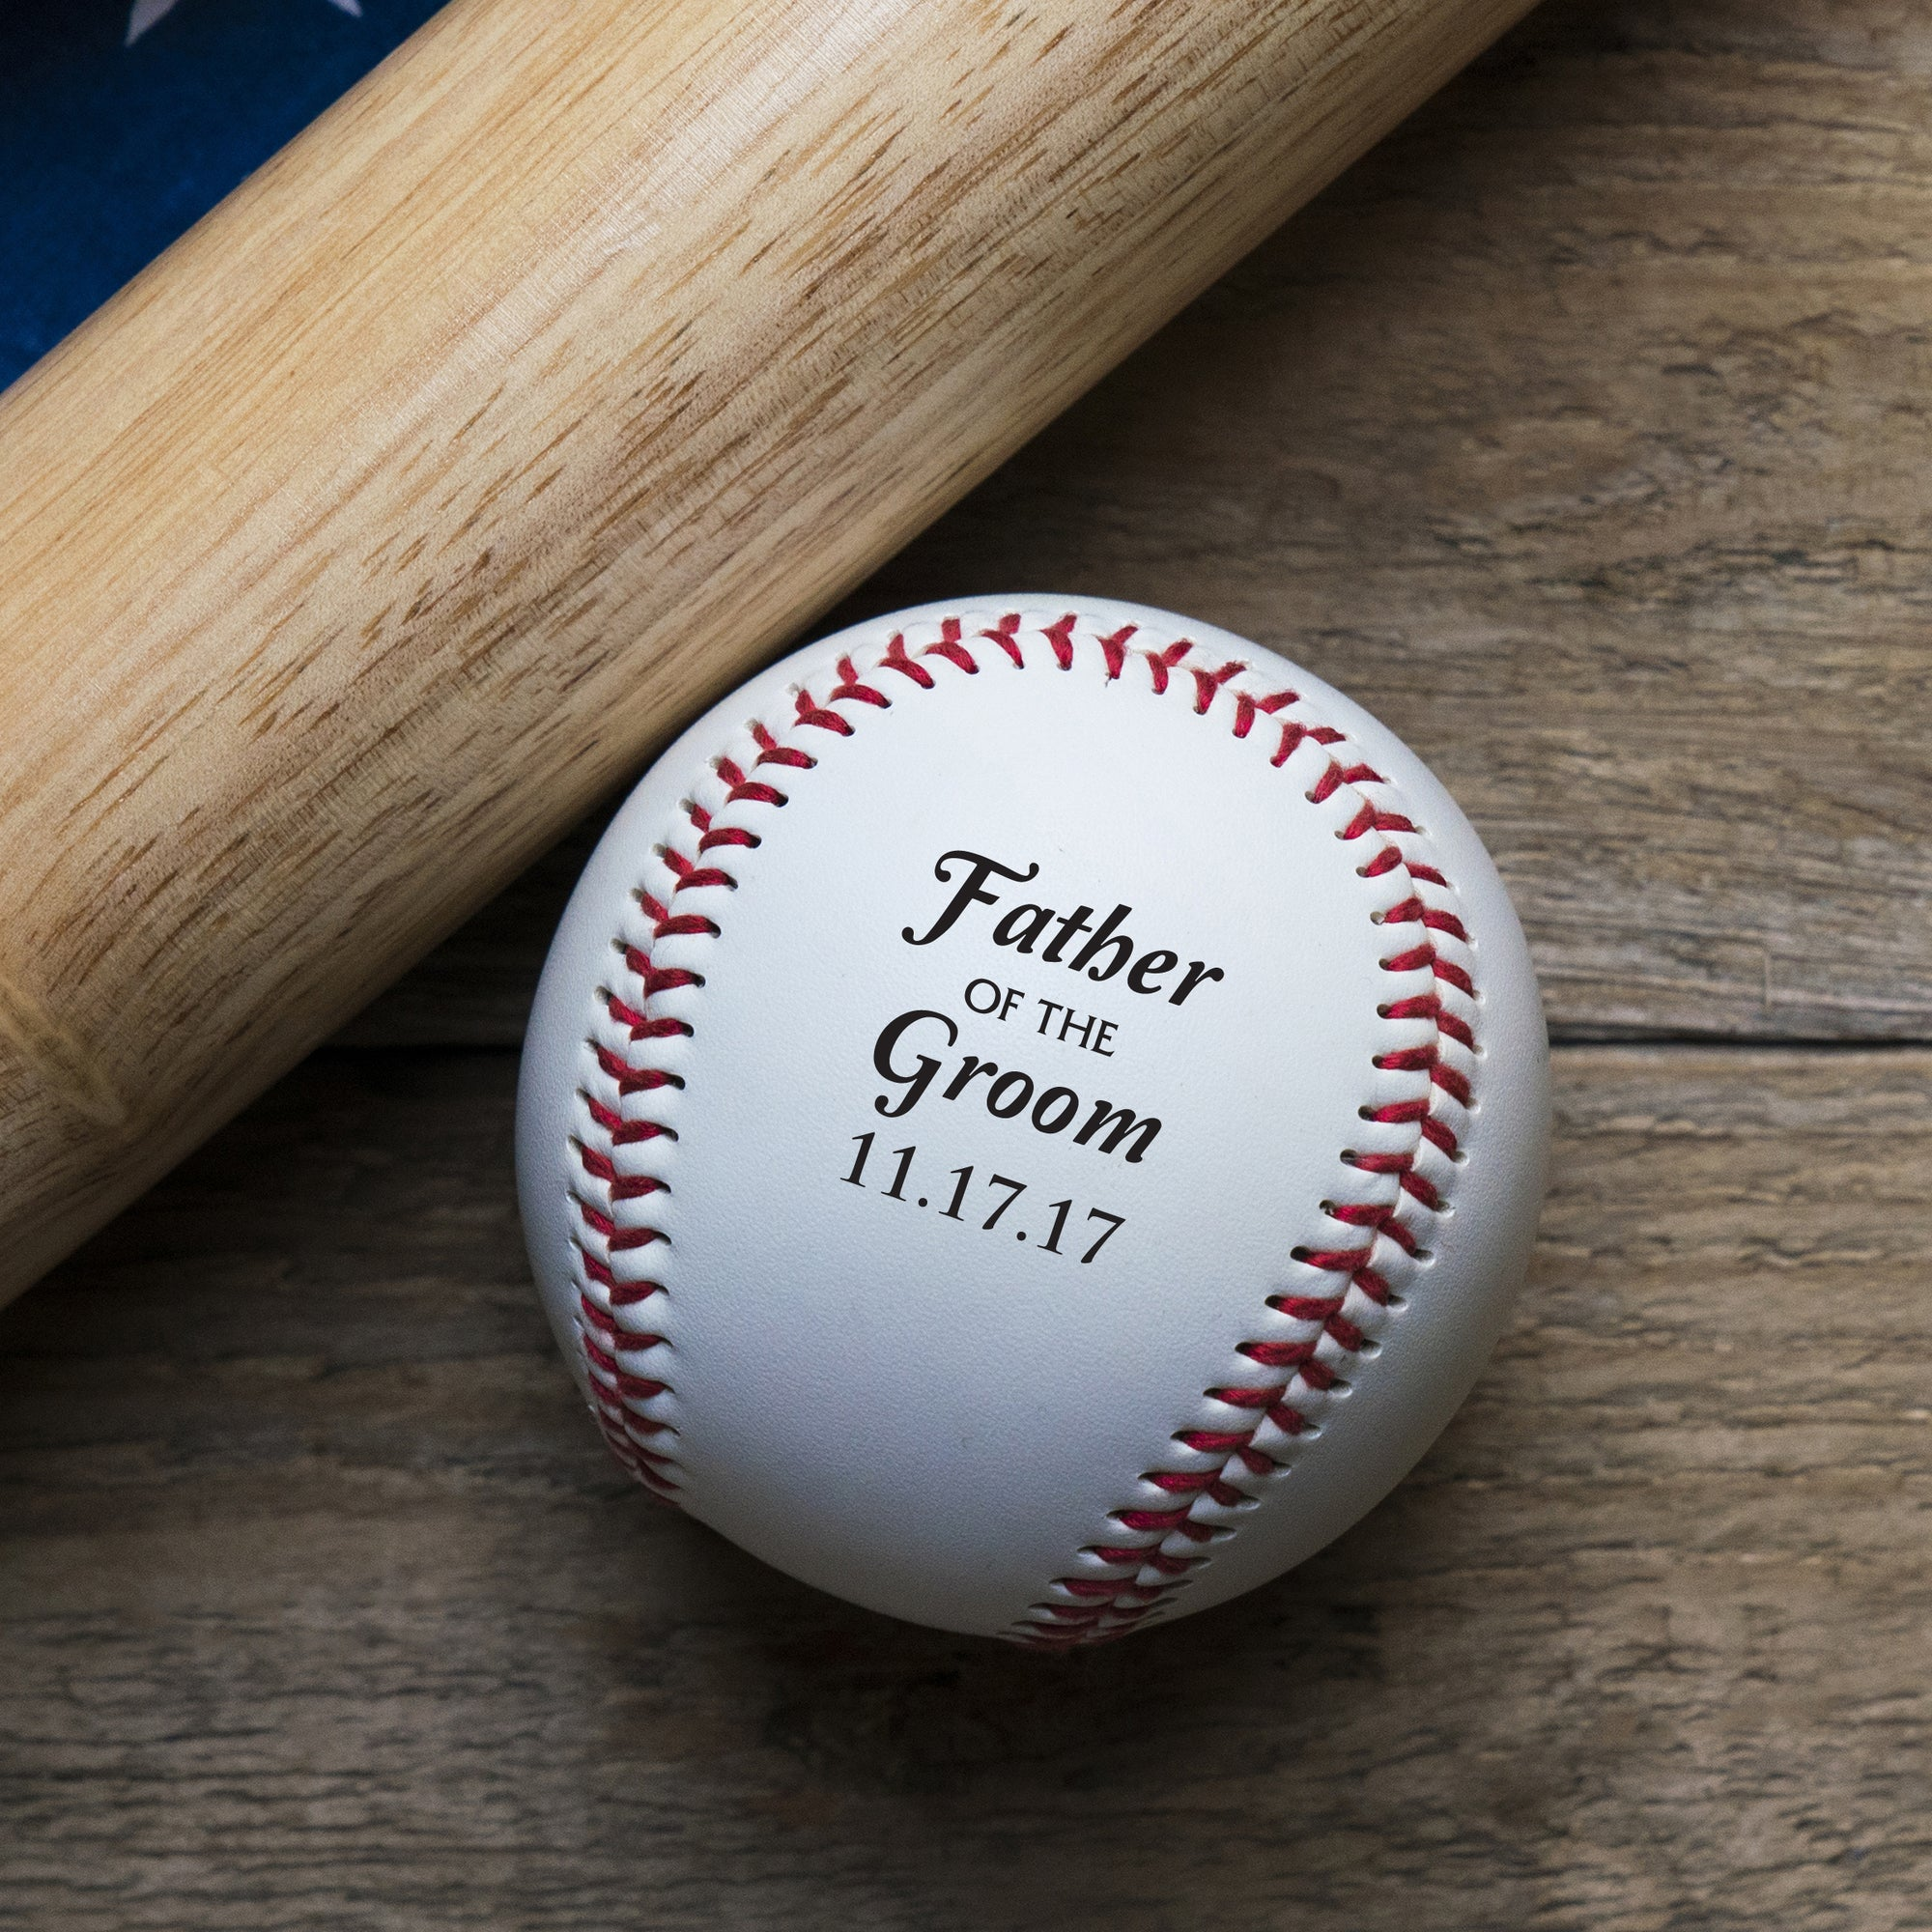 Father of the Groom Baseball